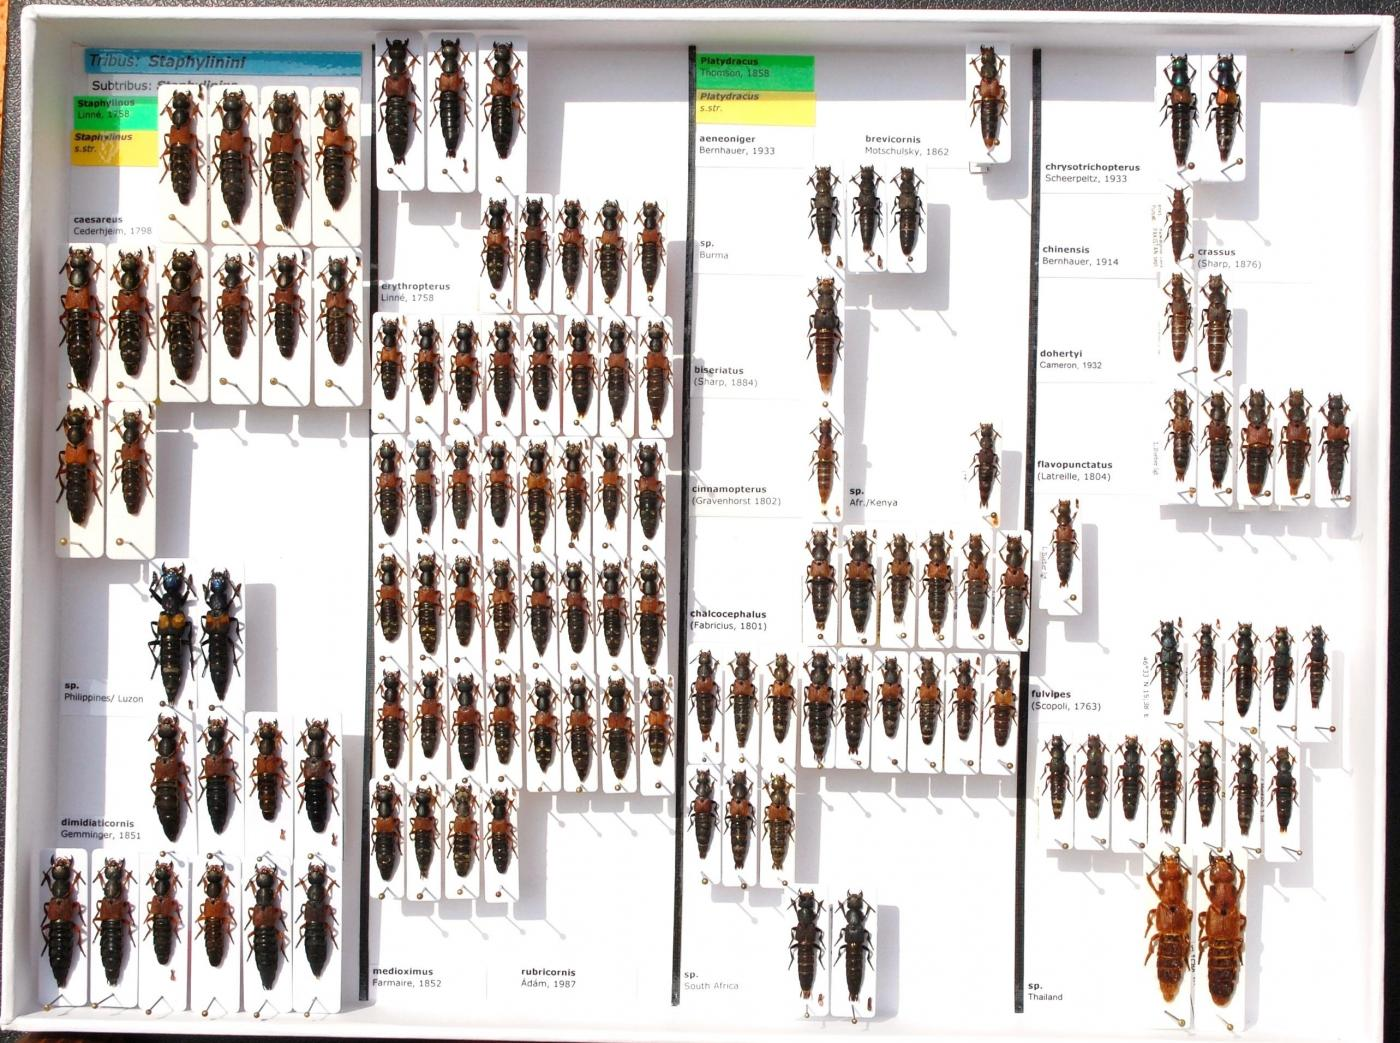 Staphylinidae_53.JPG - Attached Image (Click thumbnail to expand)